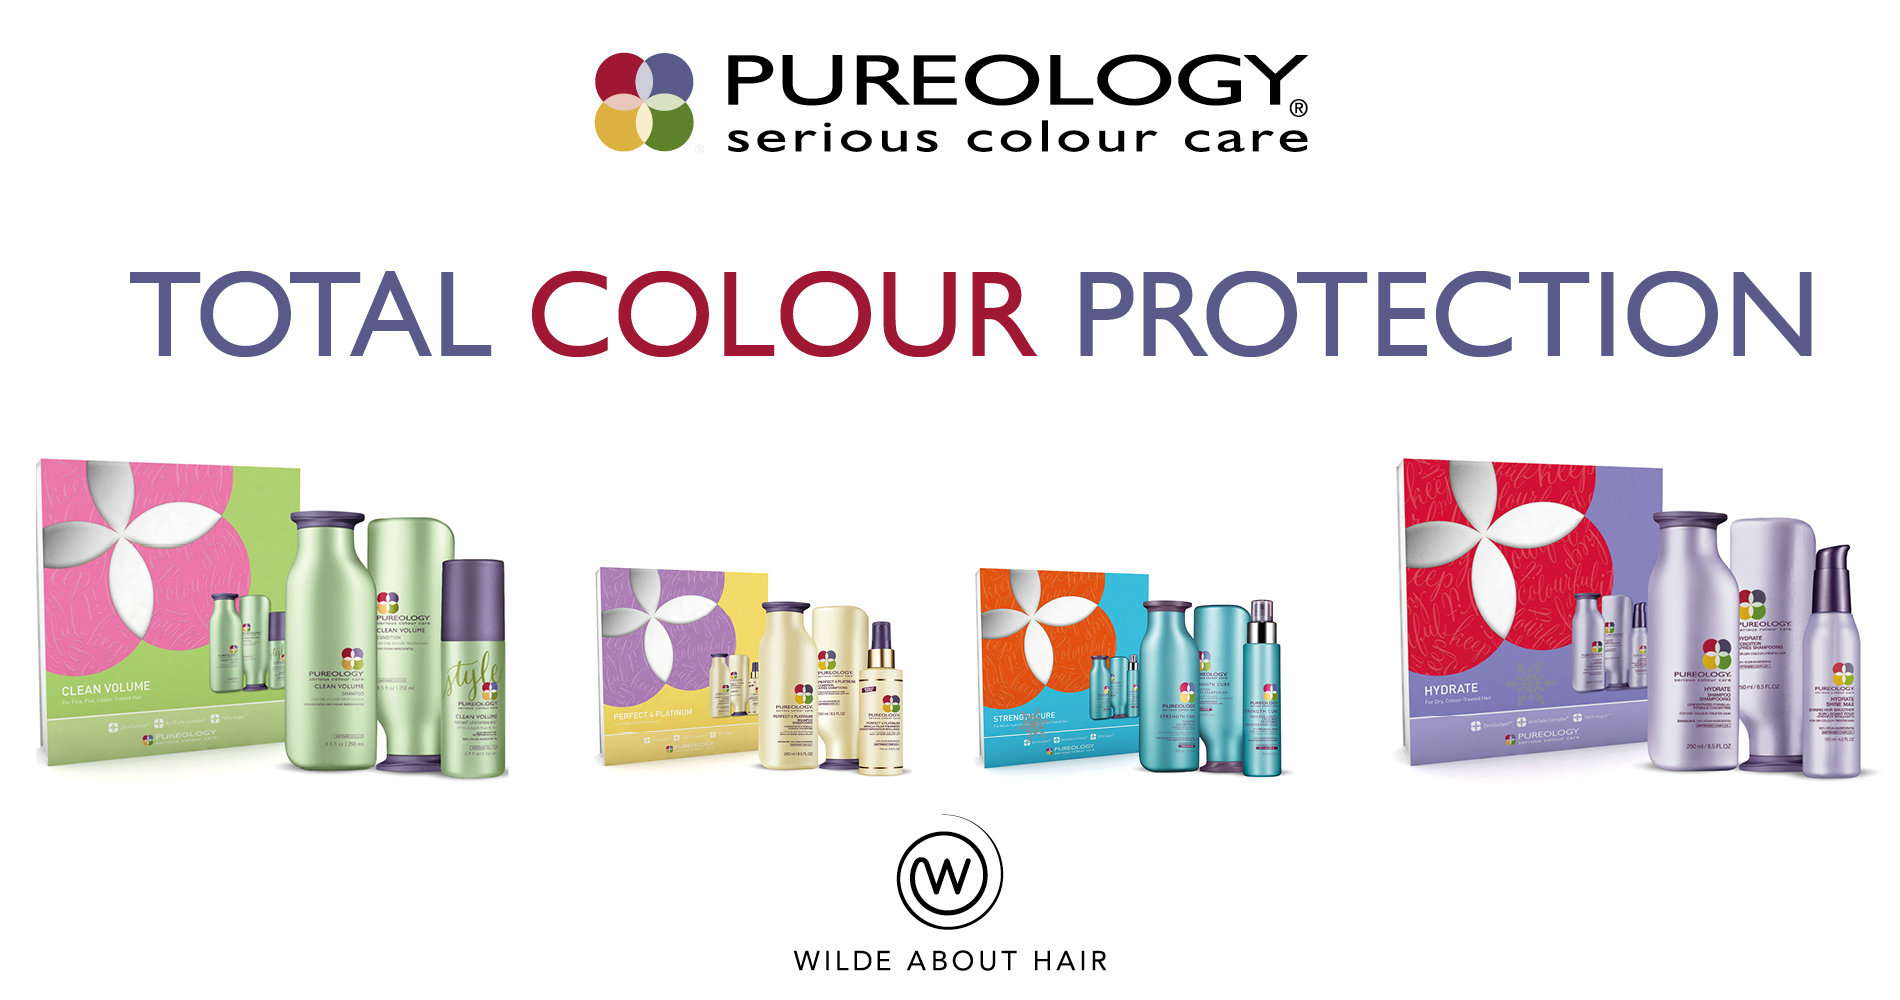 Pureology - Total Colour Protection